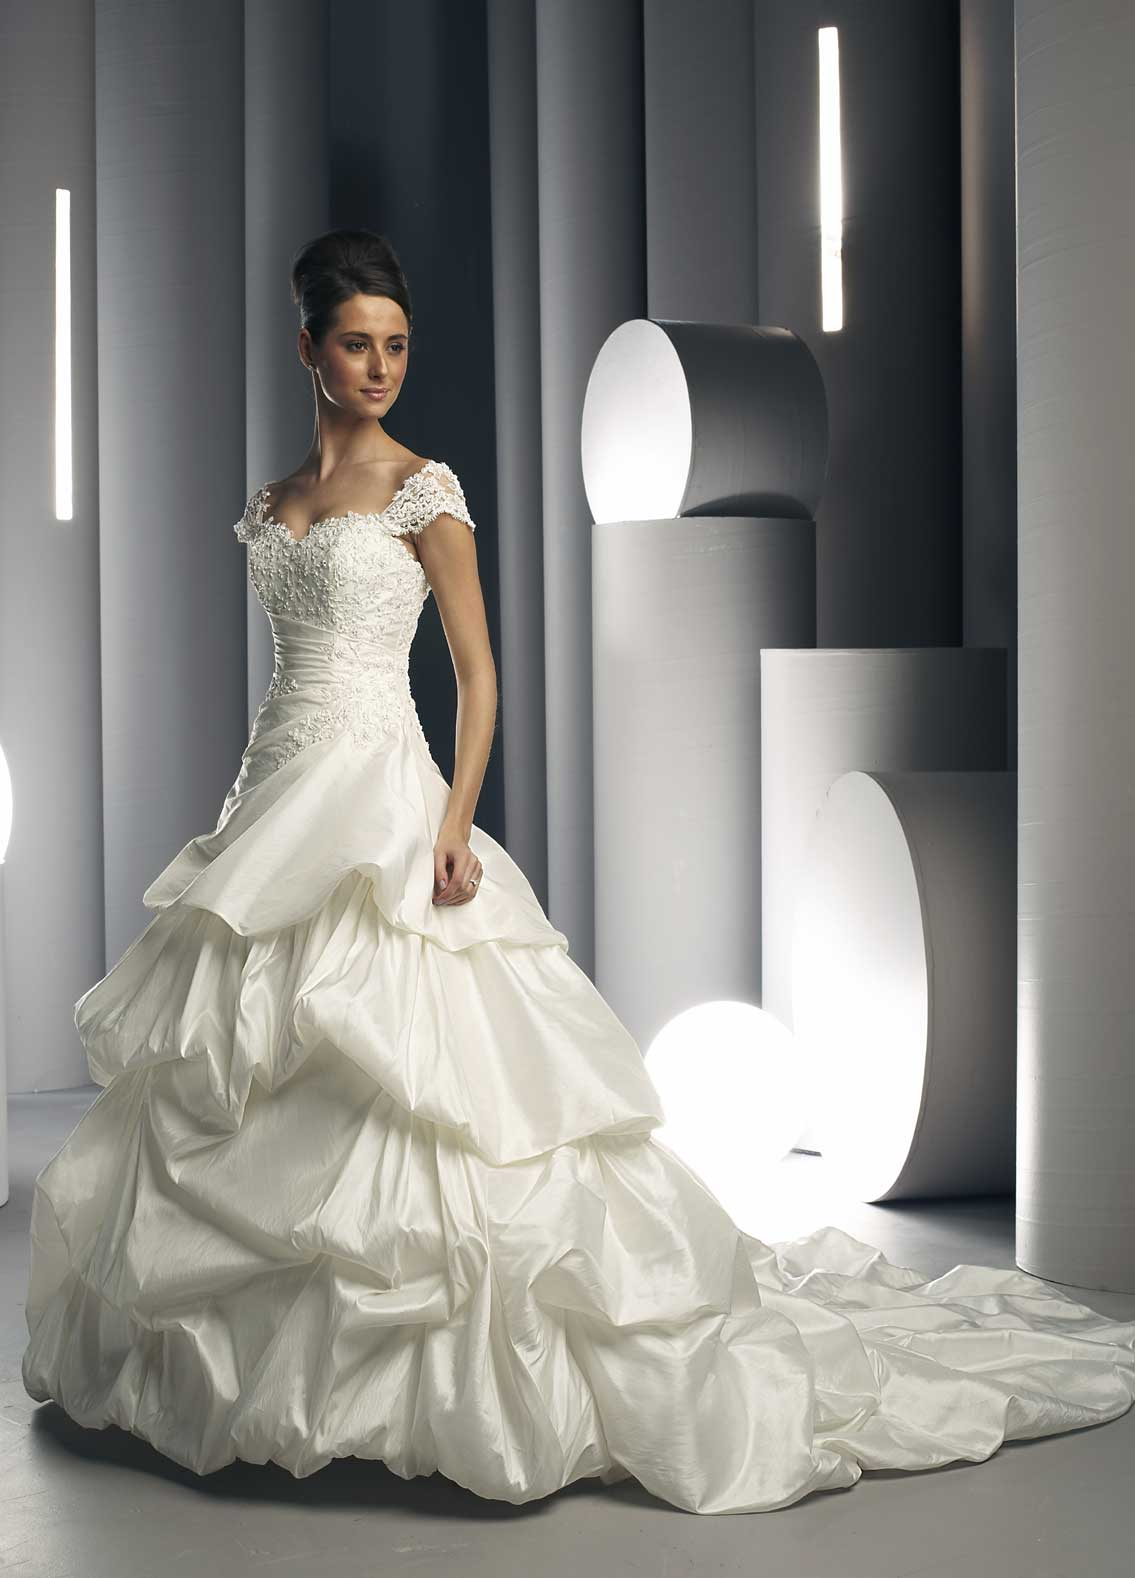 The dream wedding inspirations white bridal gowns for Wedding dresses that are white